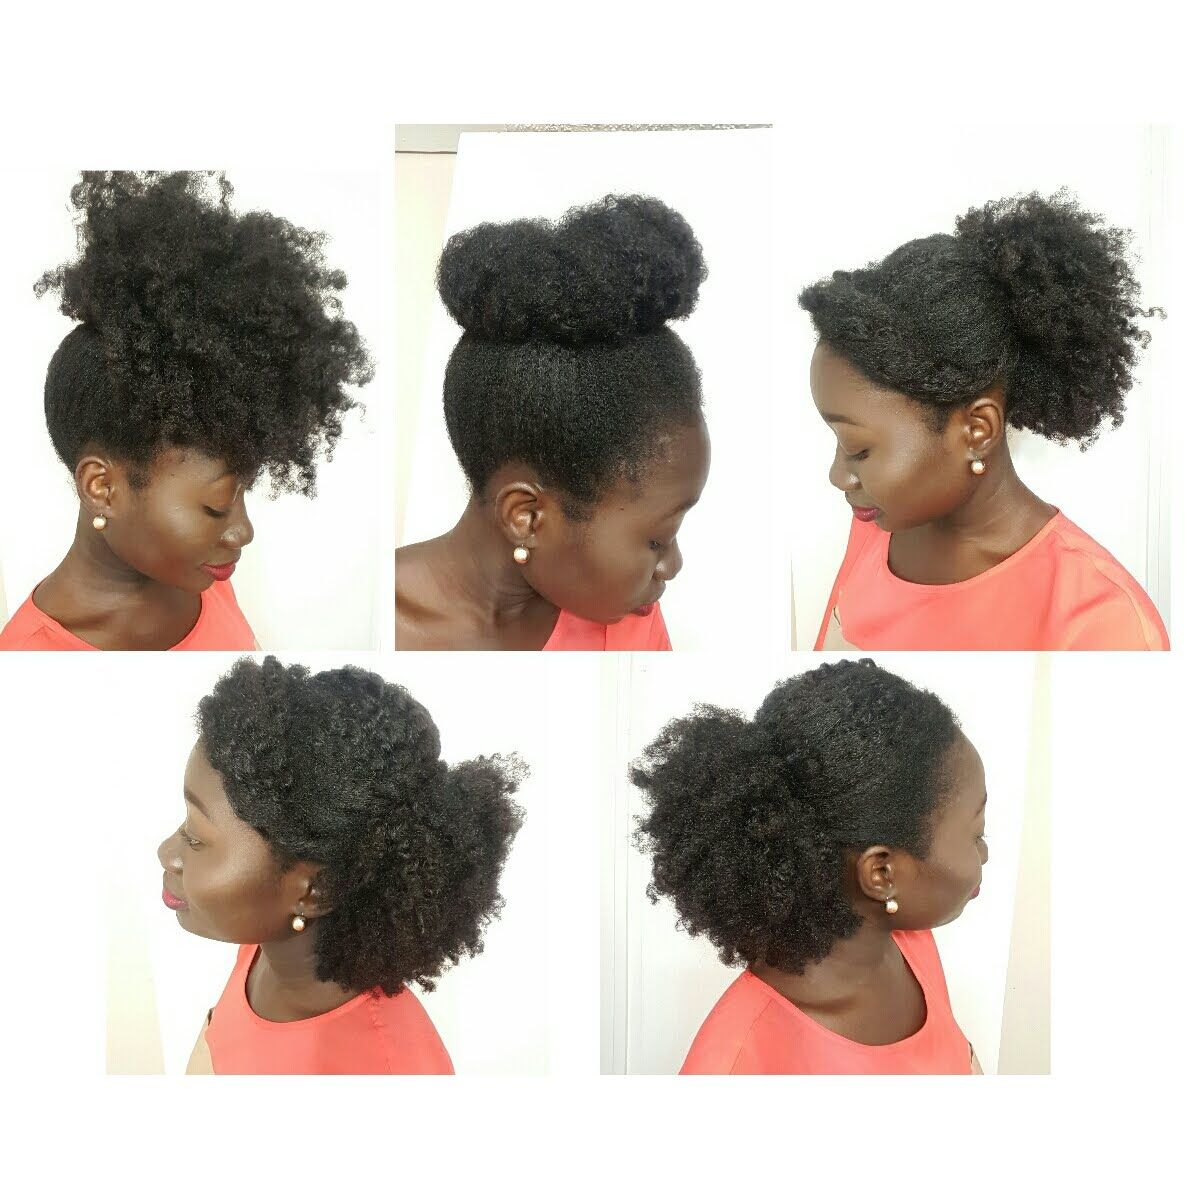 5 simple natural hair styles